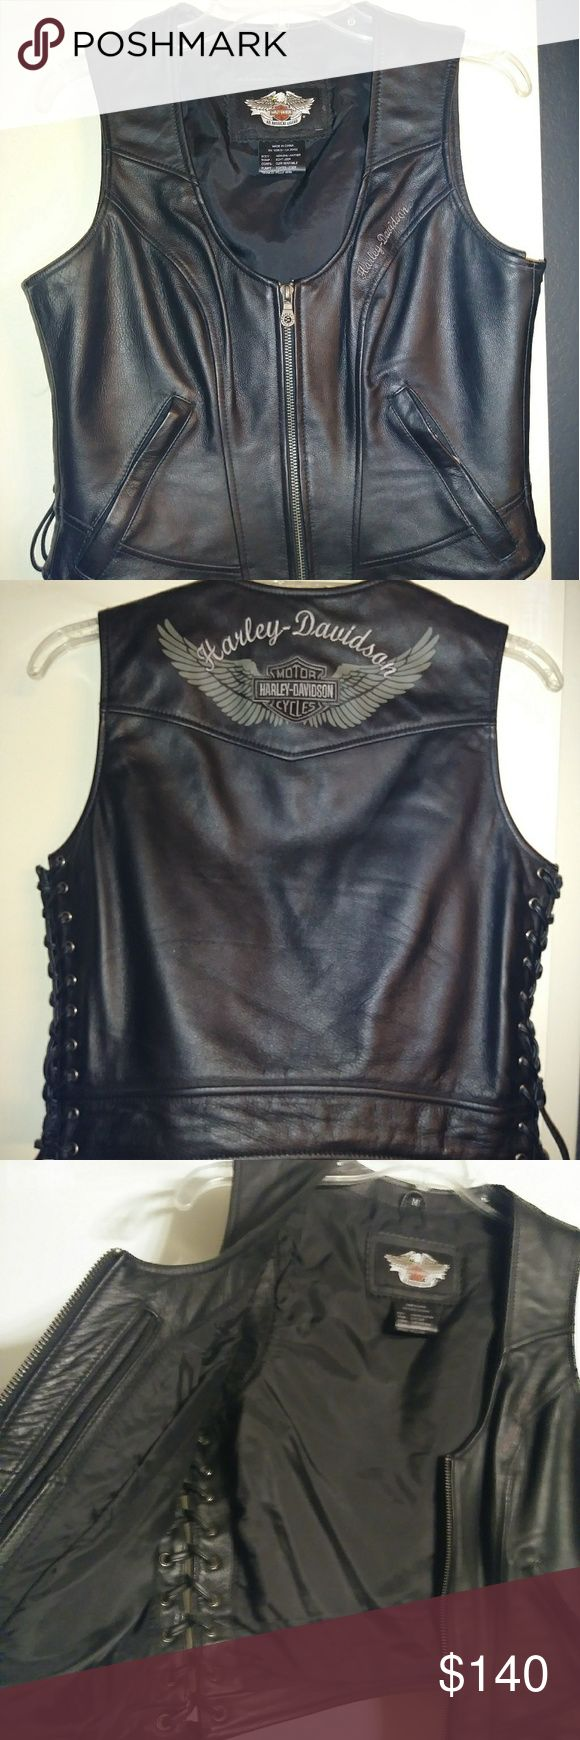 AUTHENTIC HARLEY DAVIDSON VEST Authentic leather Harley-Davidson women's vest in medium. Like brand-new.... absolutely no flaws to this vest. Wore ONCE ONLY!!! This is a STEAL FOR YOU!!! Harley-Davidson Jackets & Coats Vests